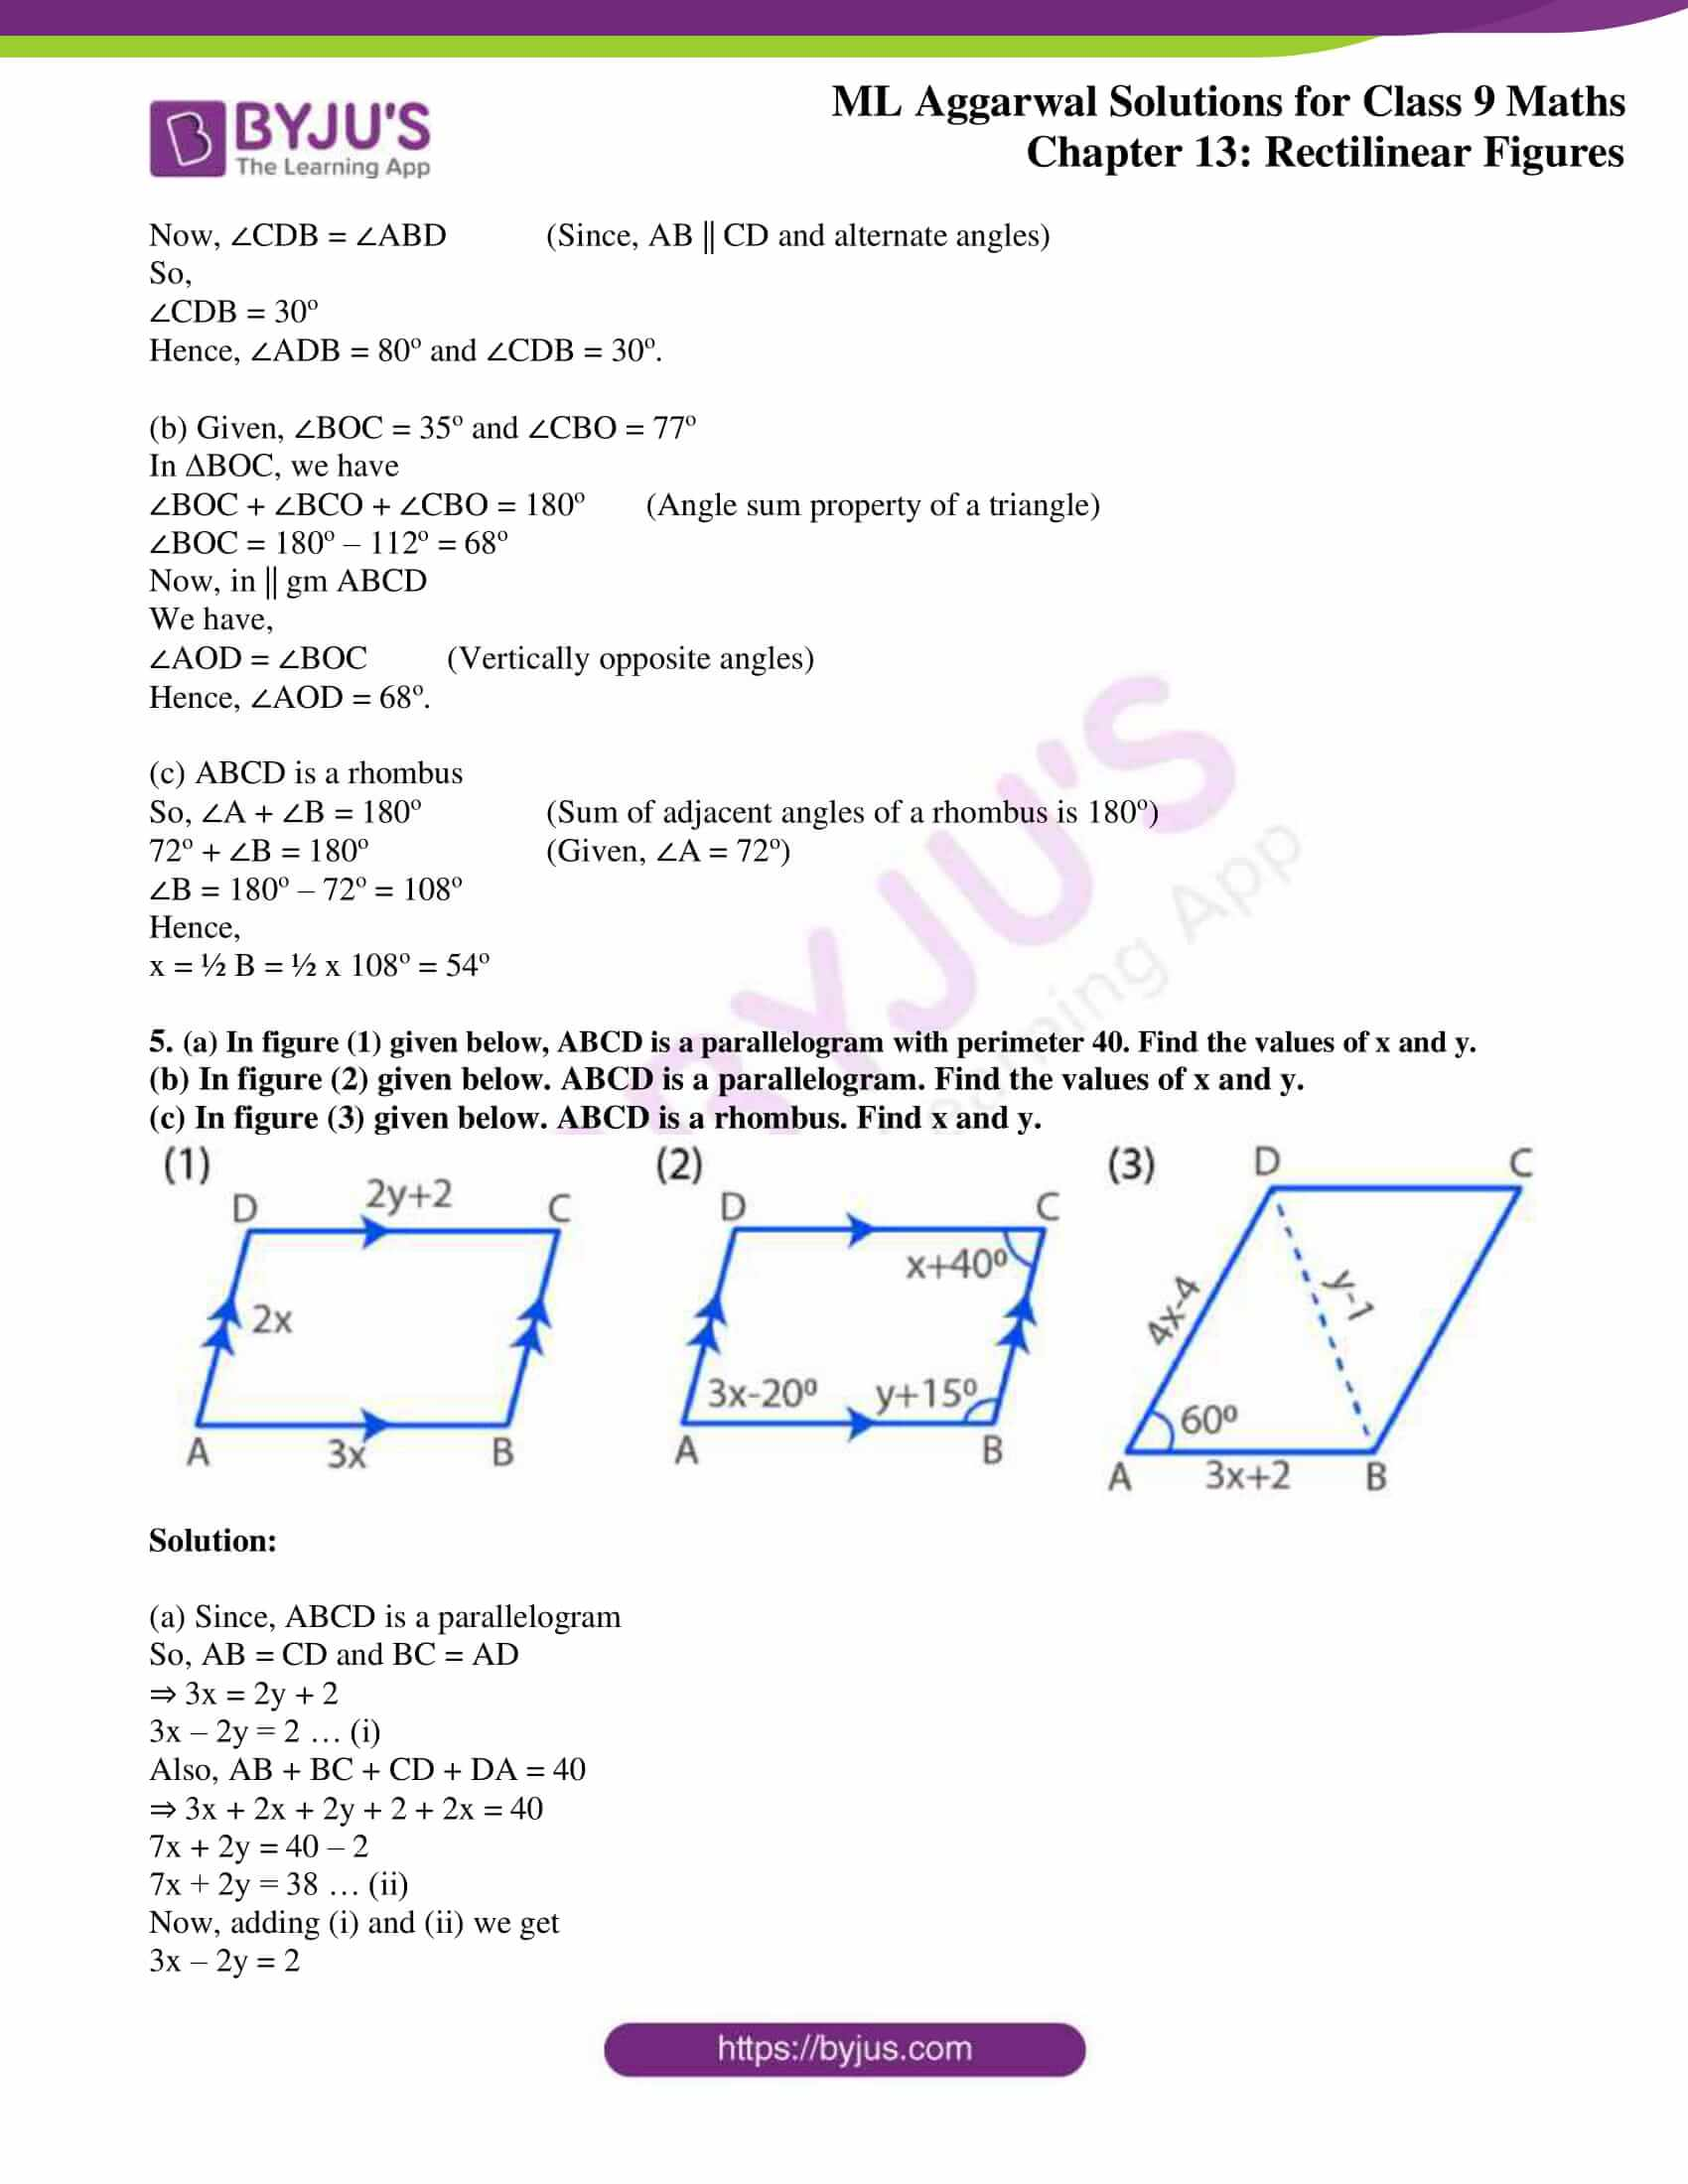 ml aggarwal solutions for class 9 maths chapter 13 03